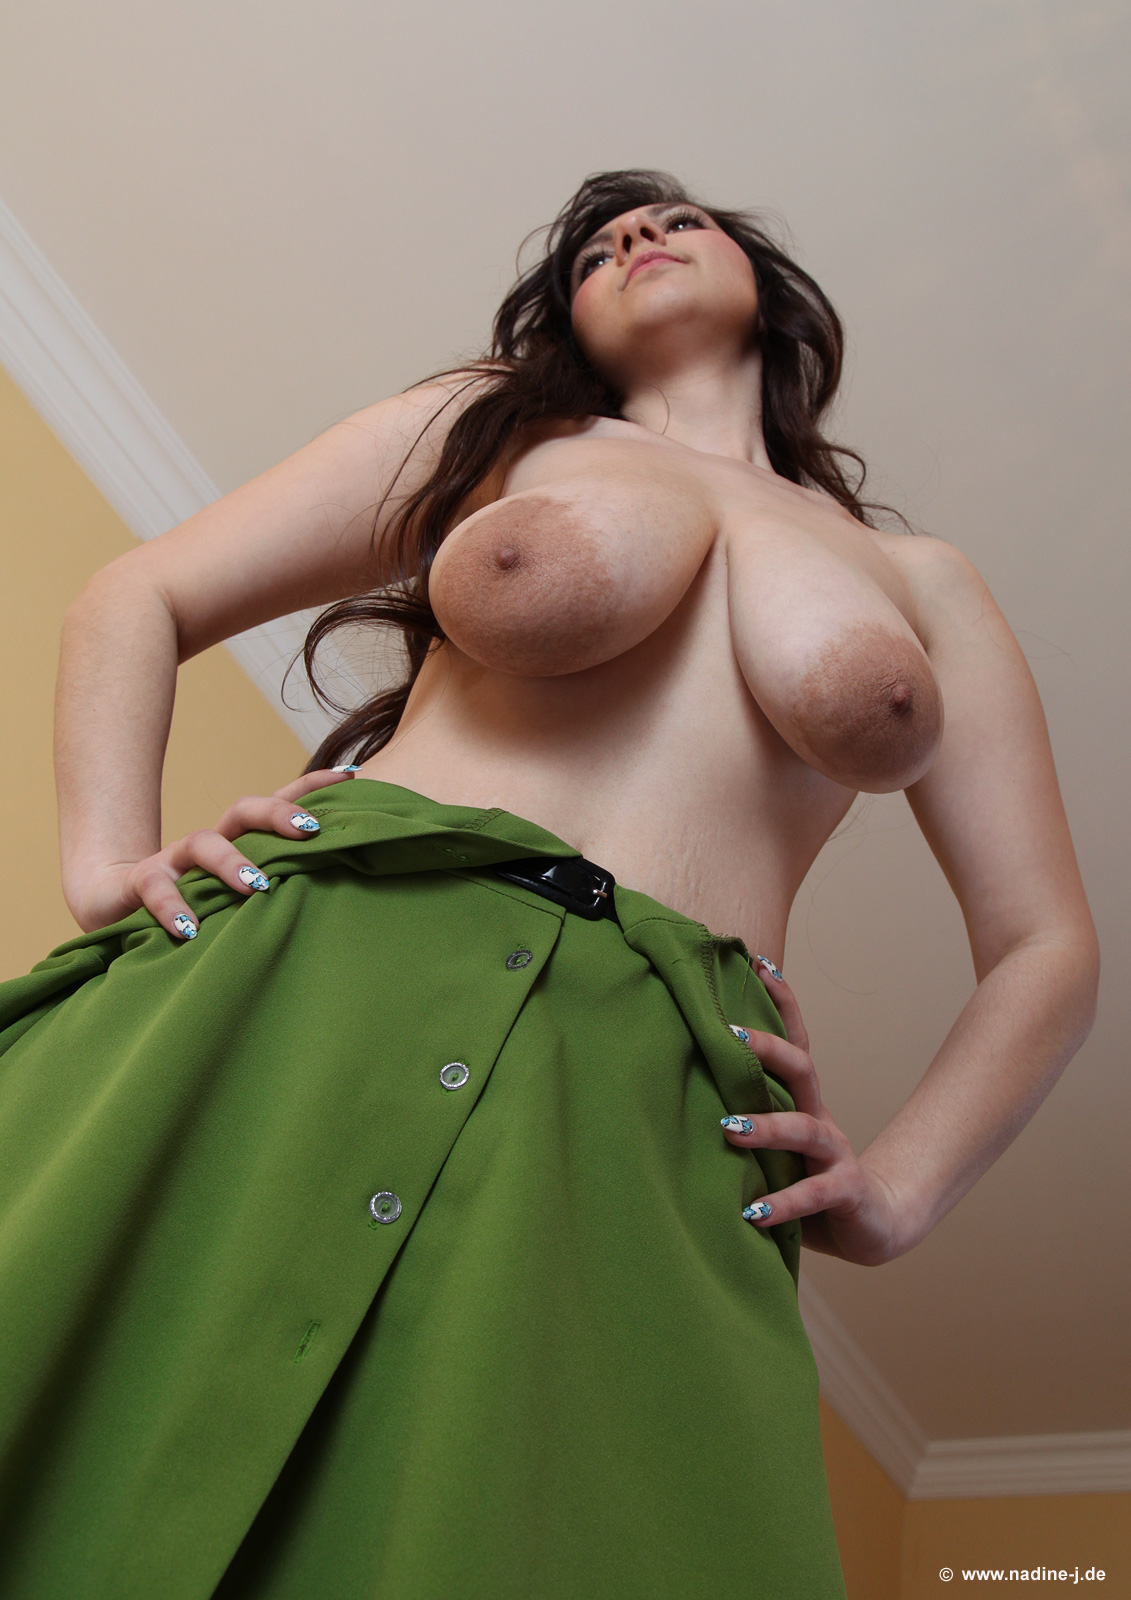 Amazing undine with fantastic flesh shows adorable titties